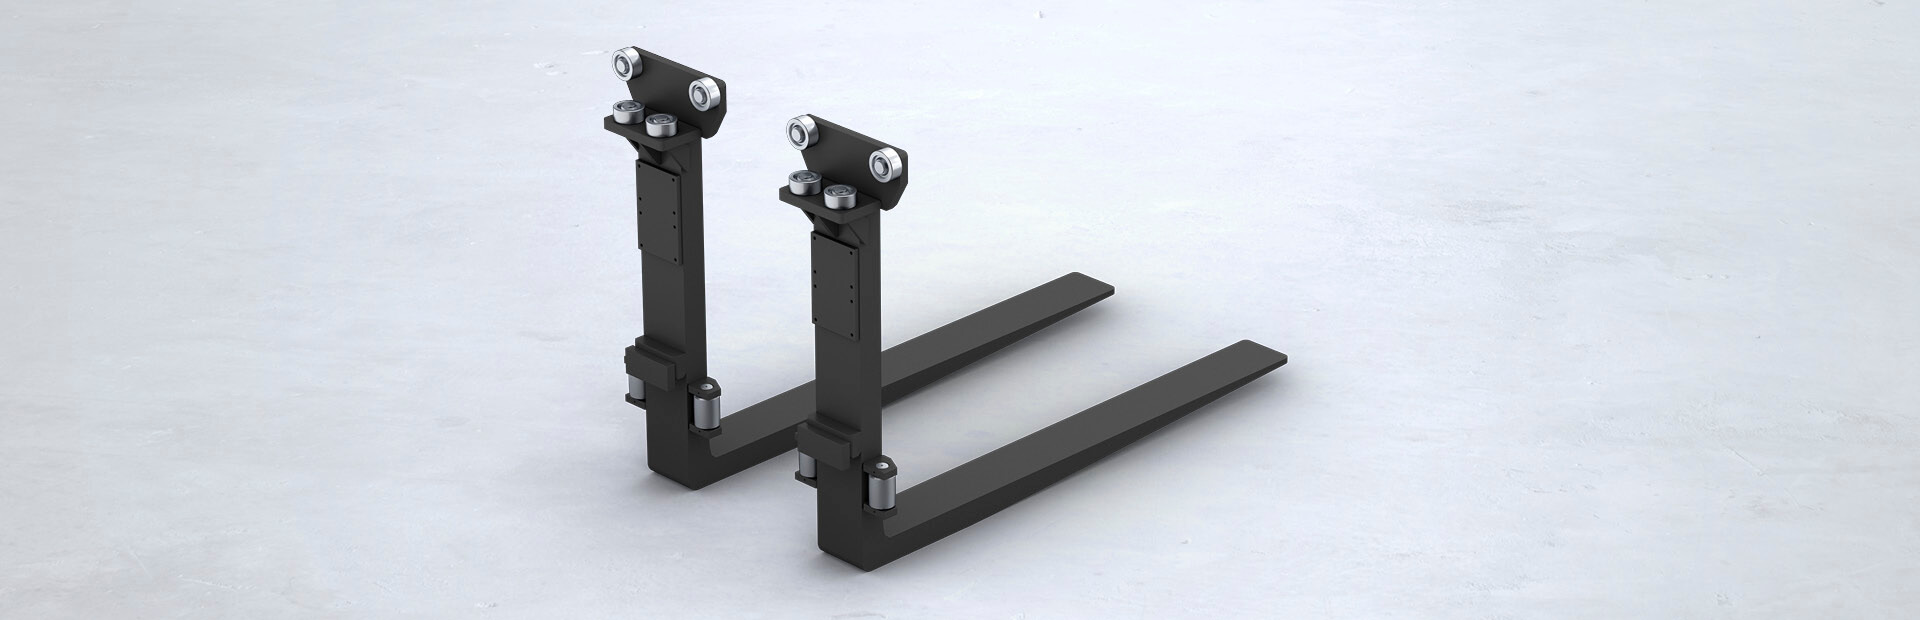 VETTER roller-guided forks